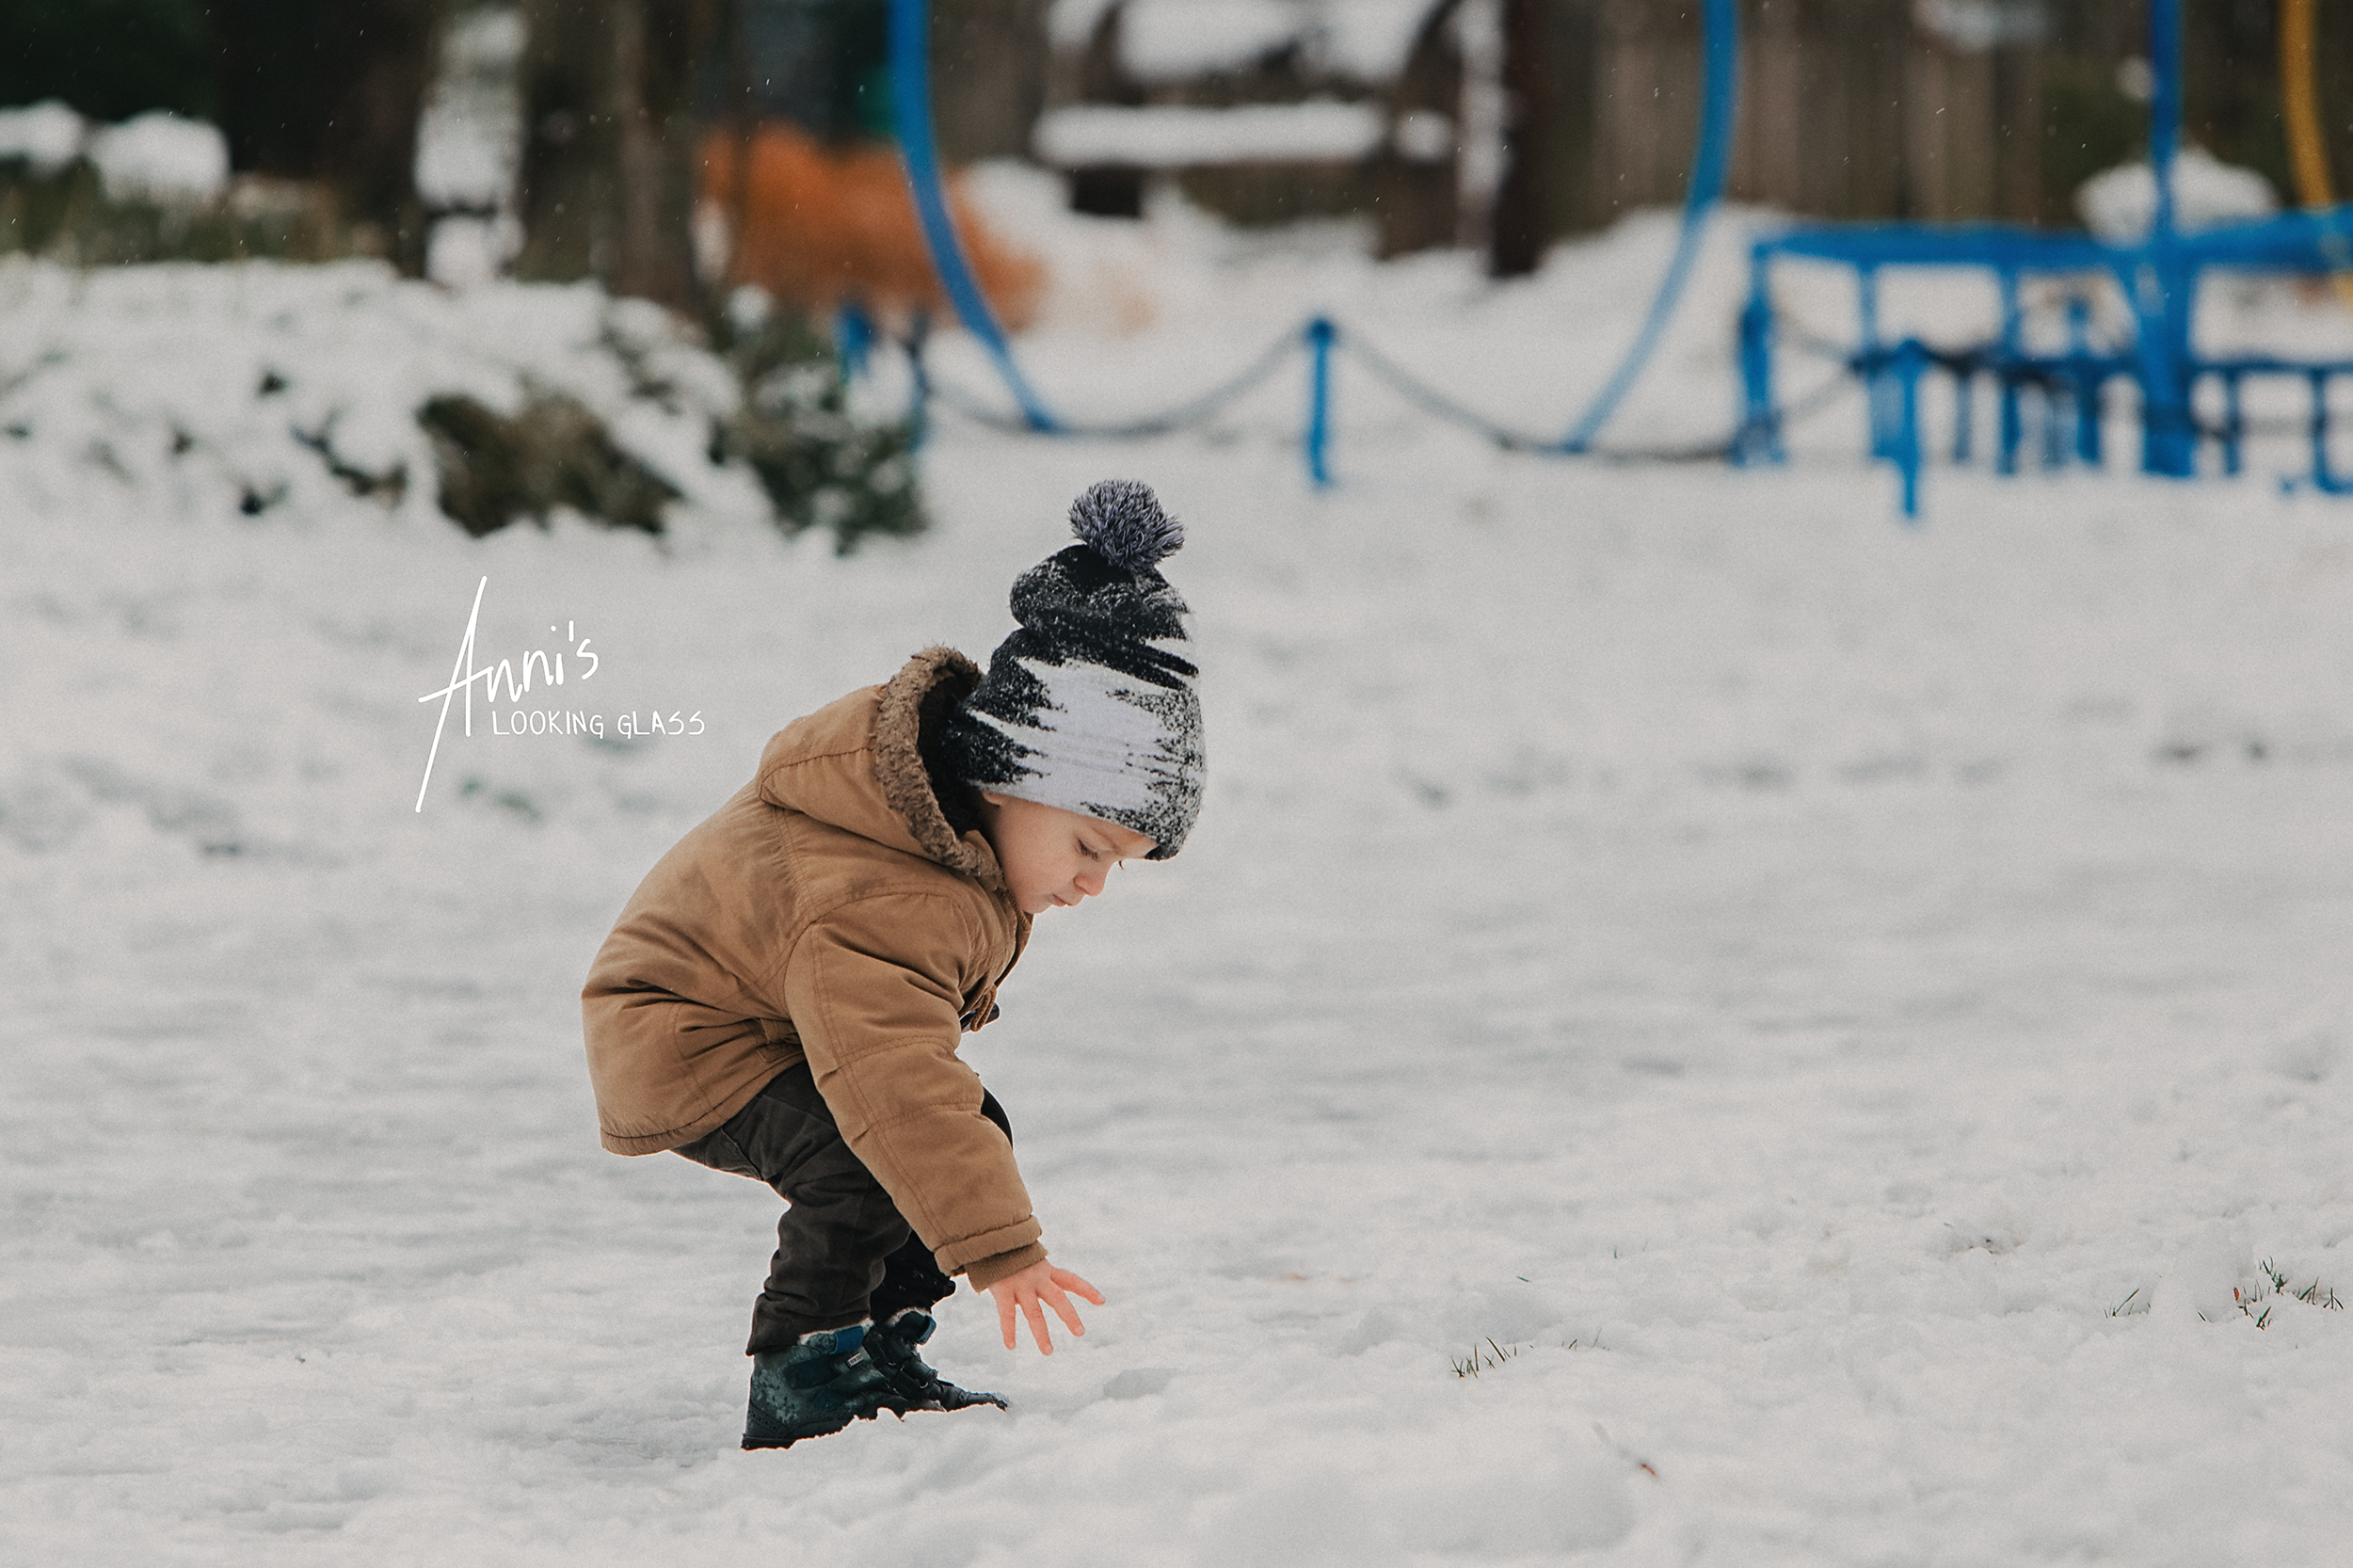 A young boy playing in the snow